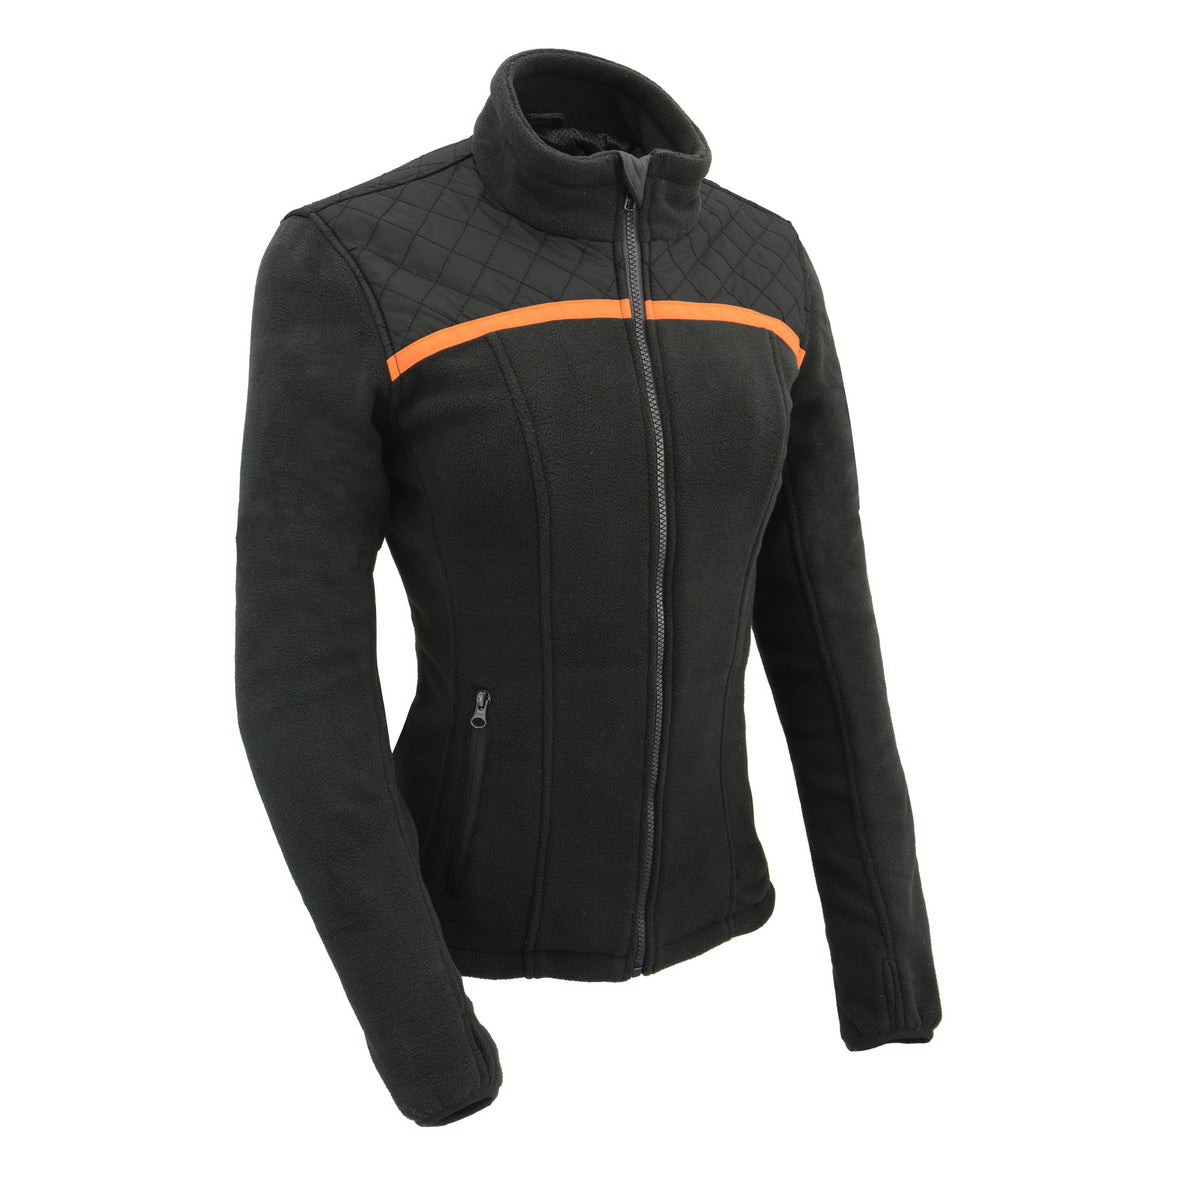 Milwaukee Leather Performance MPL2783 Women Micro Fleece Zipper Front Jacket with Orange Stripe